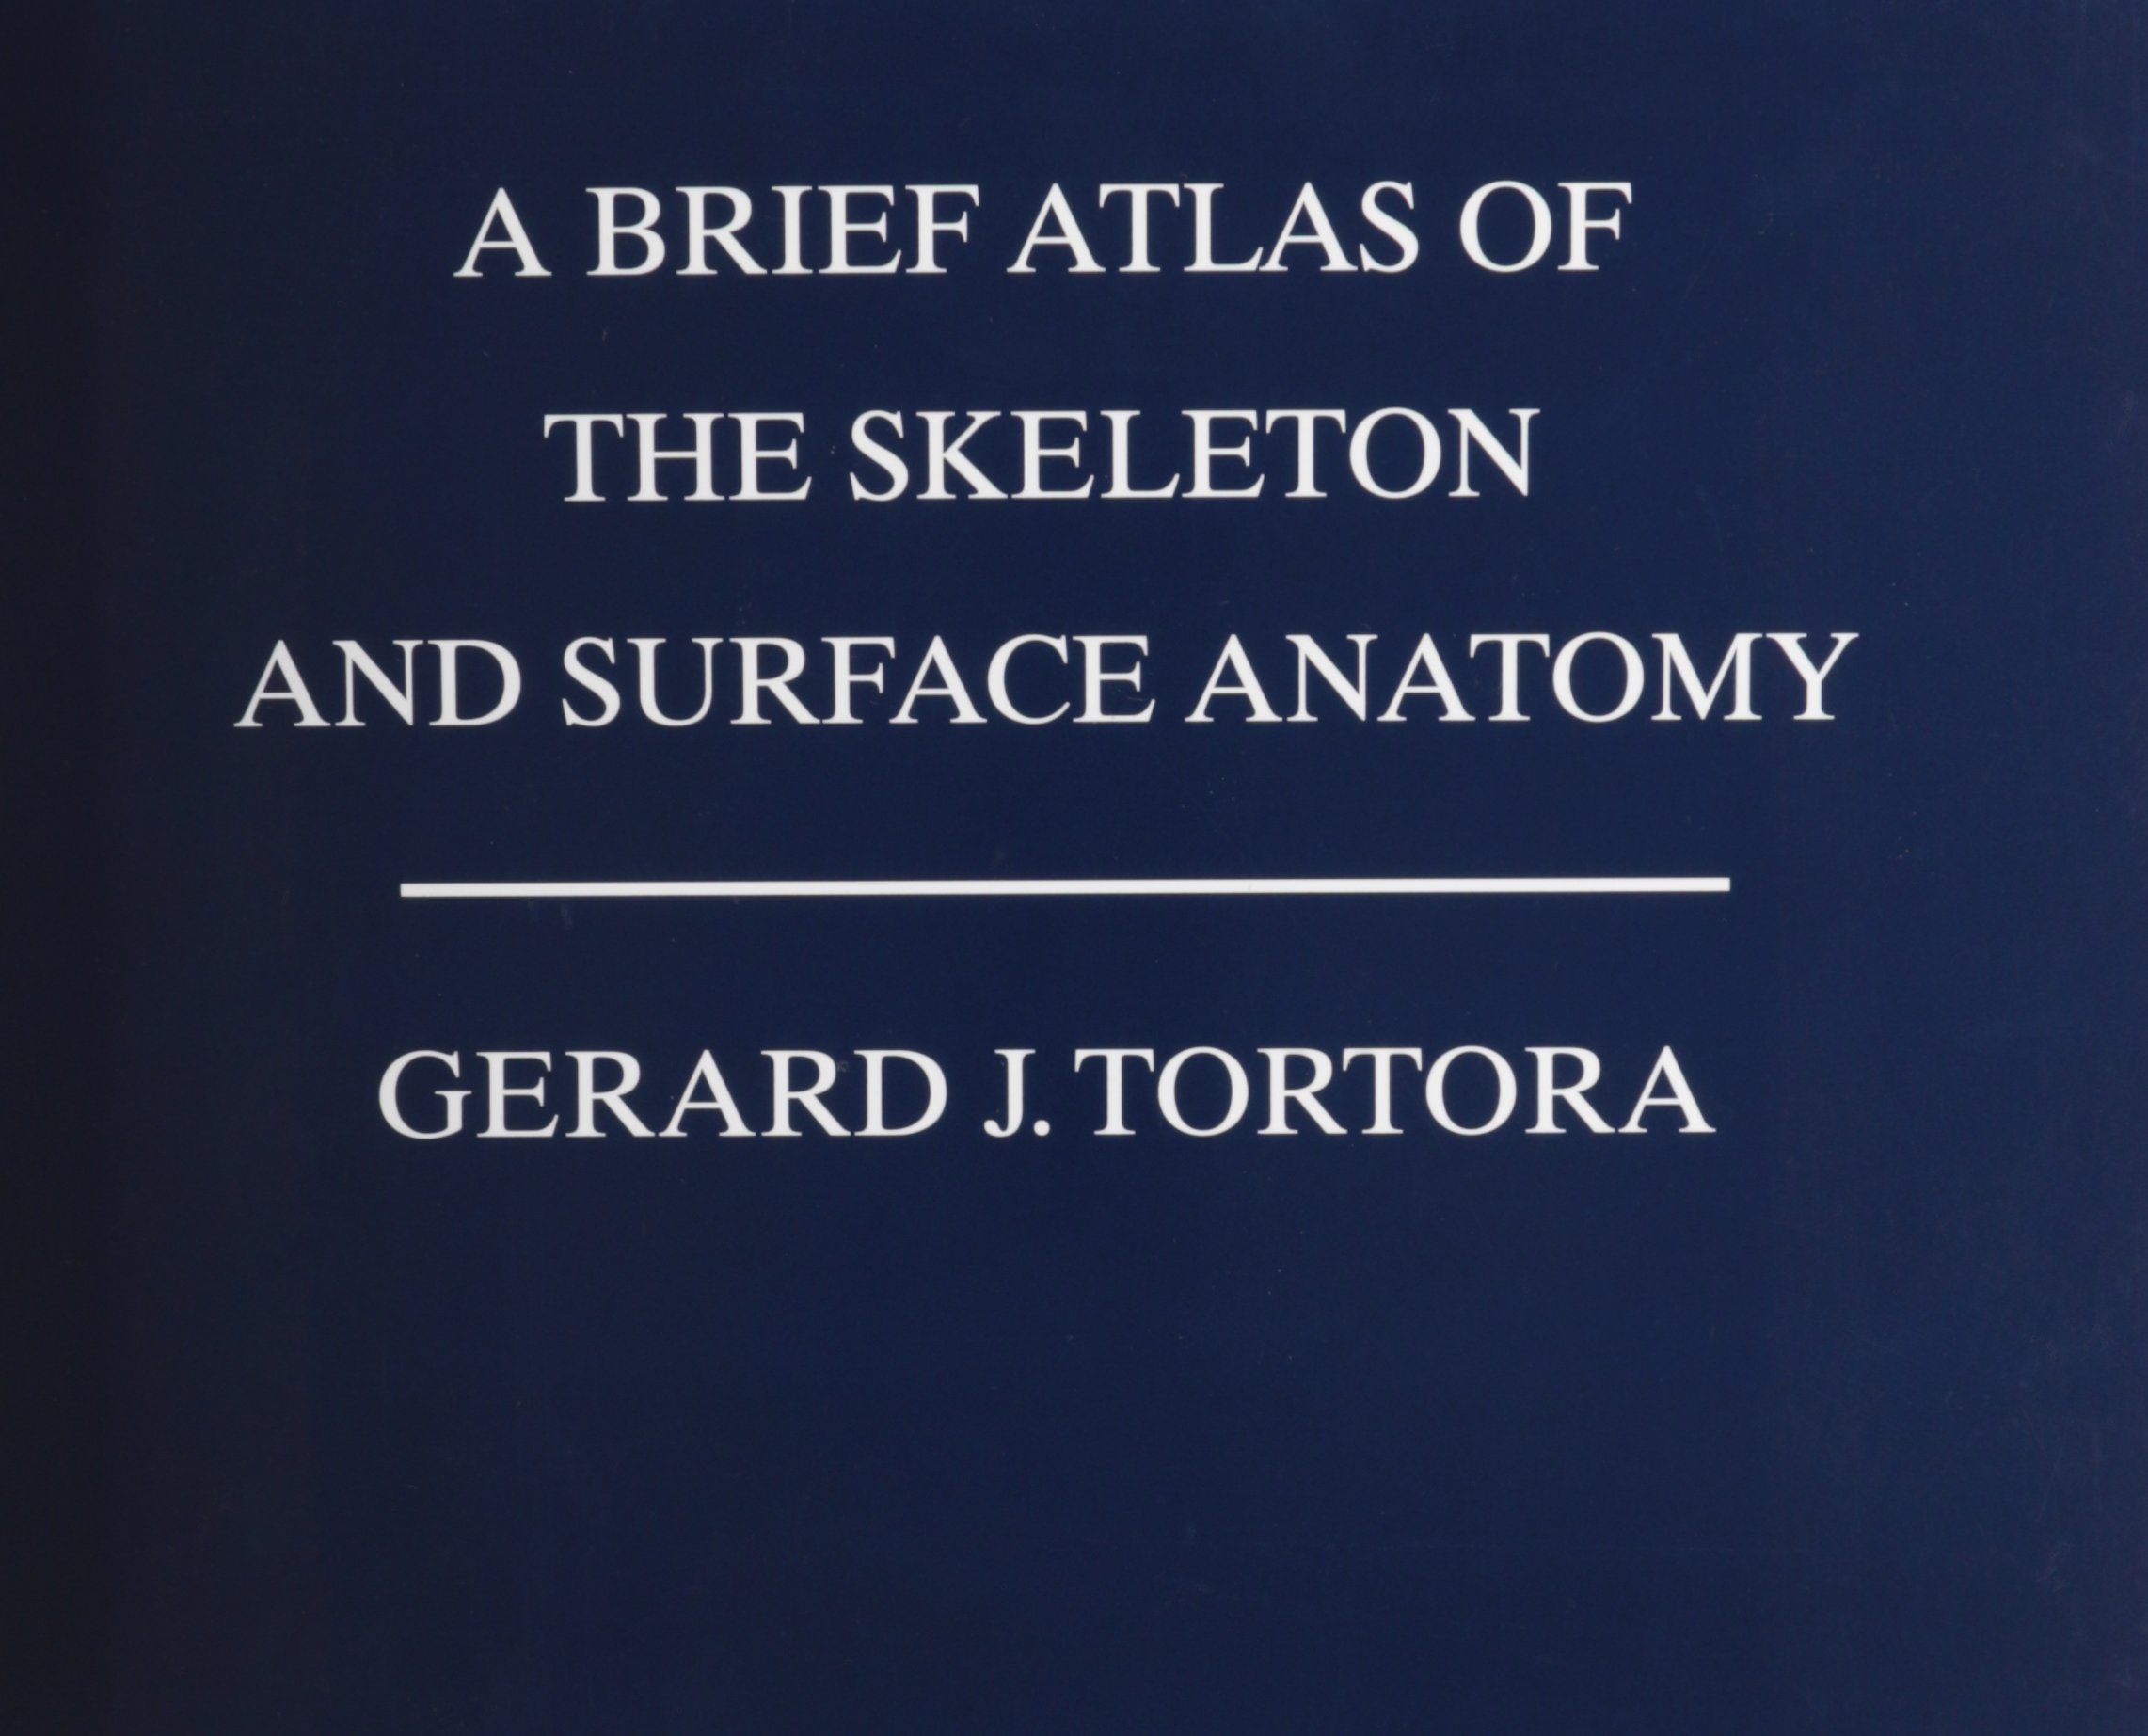 A Brief Atlas of the Skeleton and Surface Anatomy